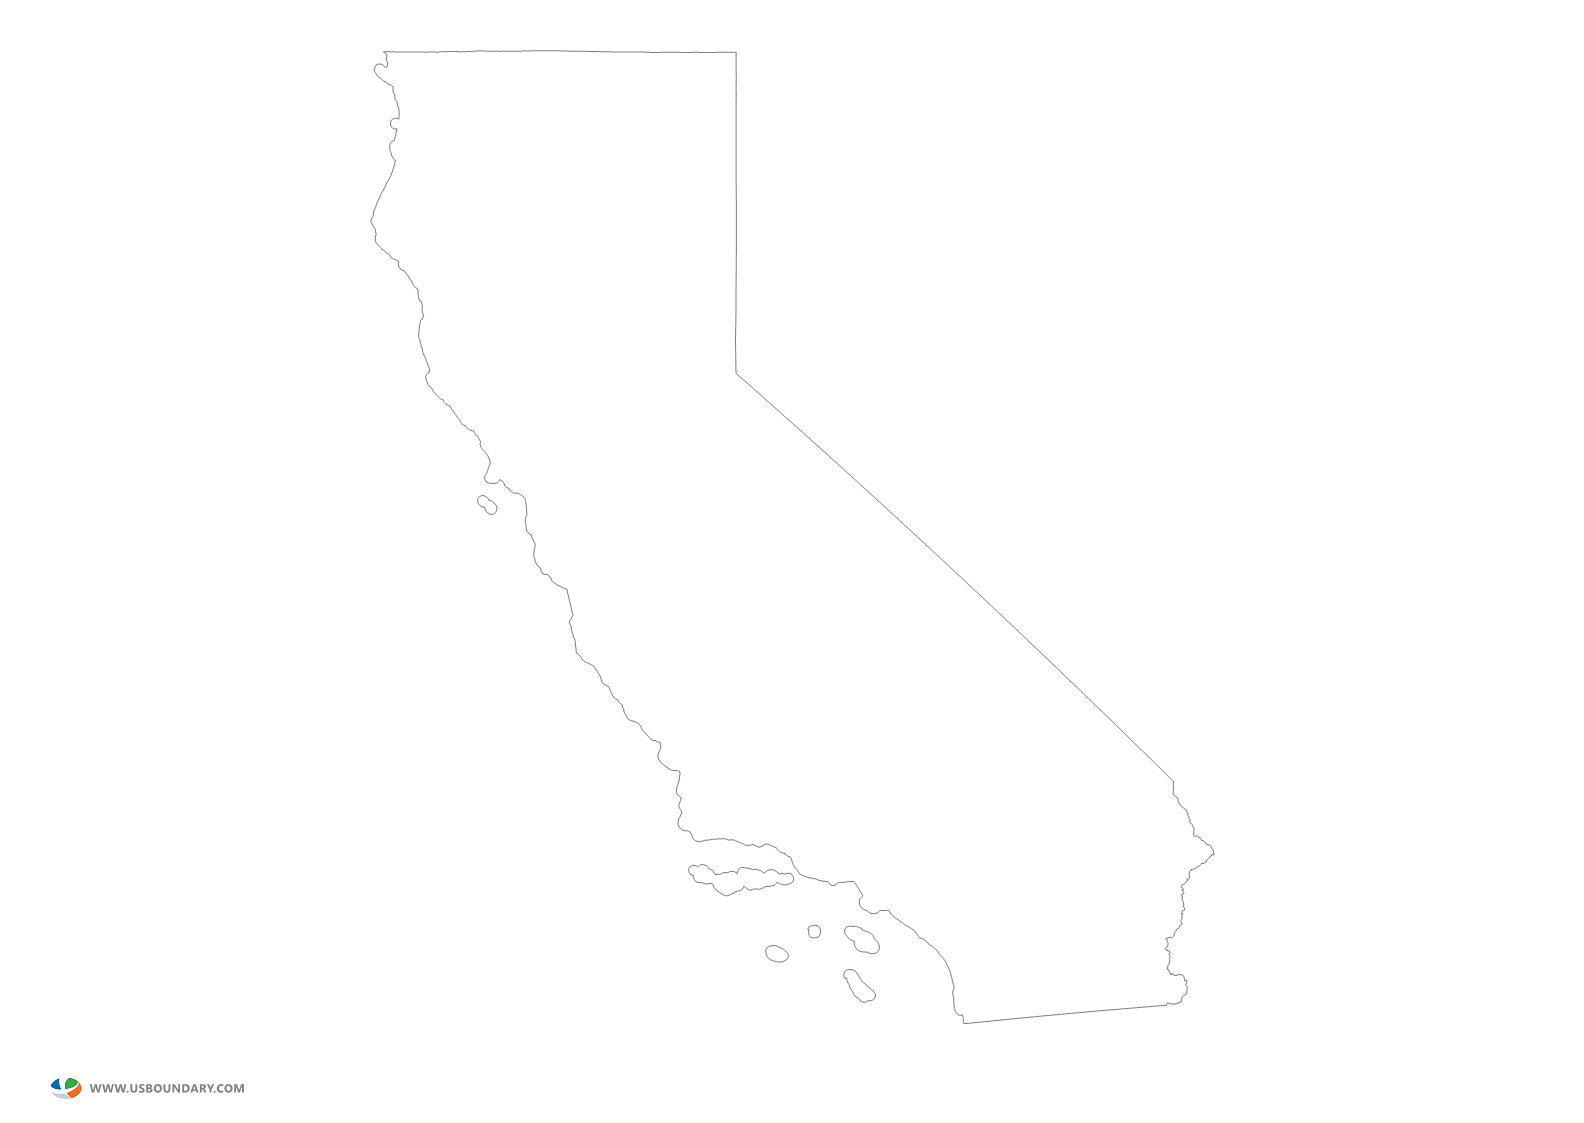 Calif transparent draw. State maps download california